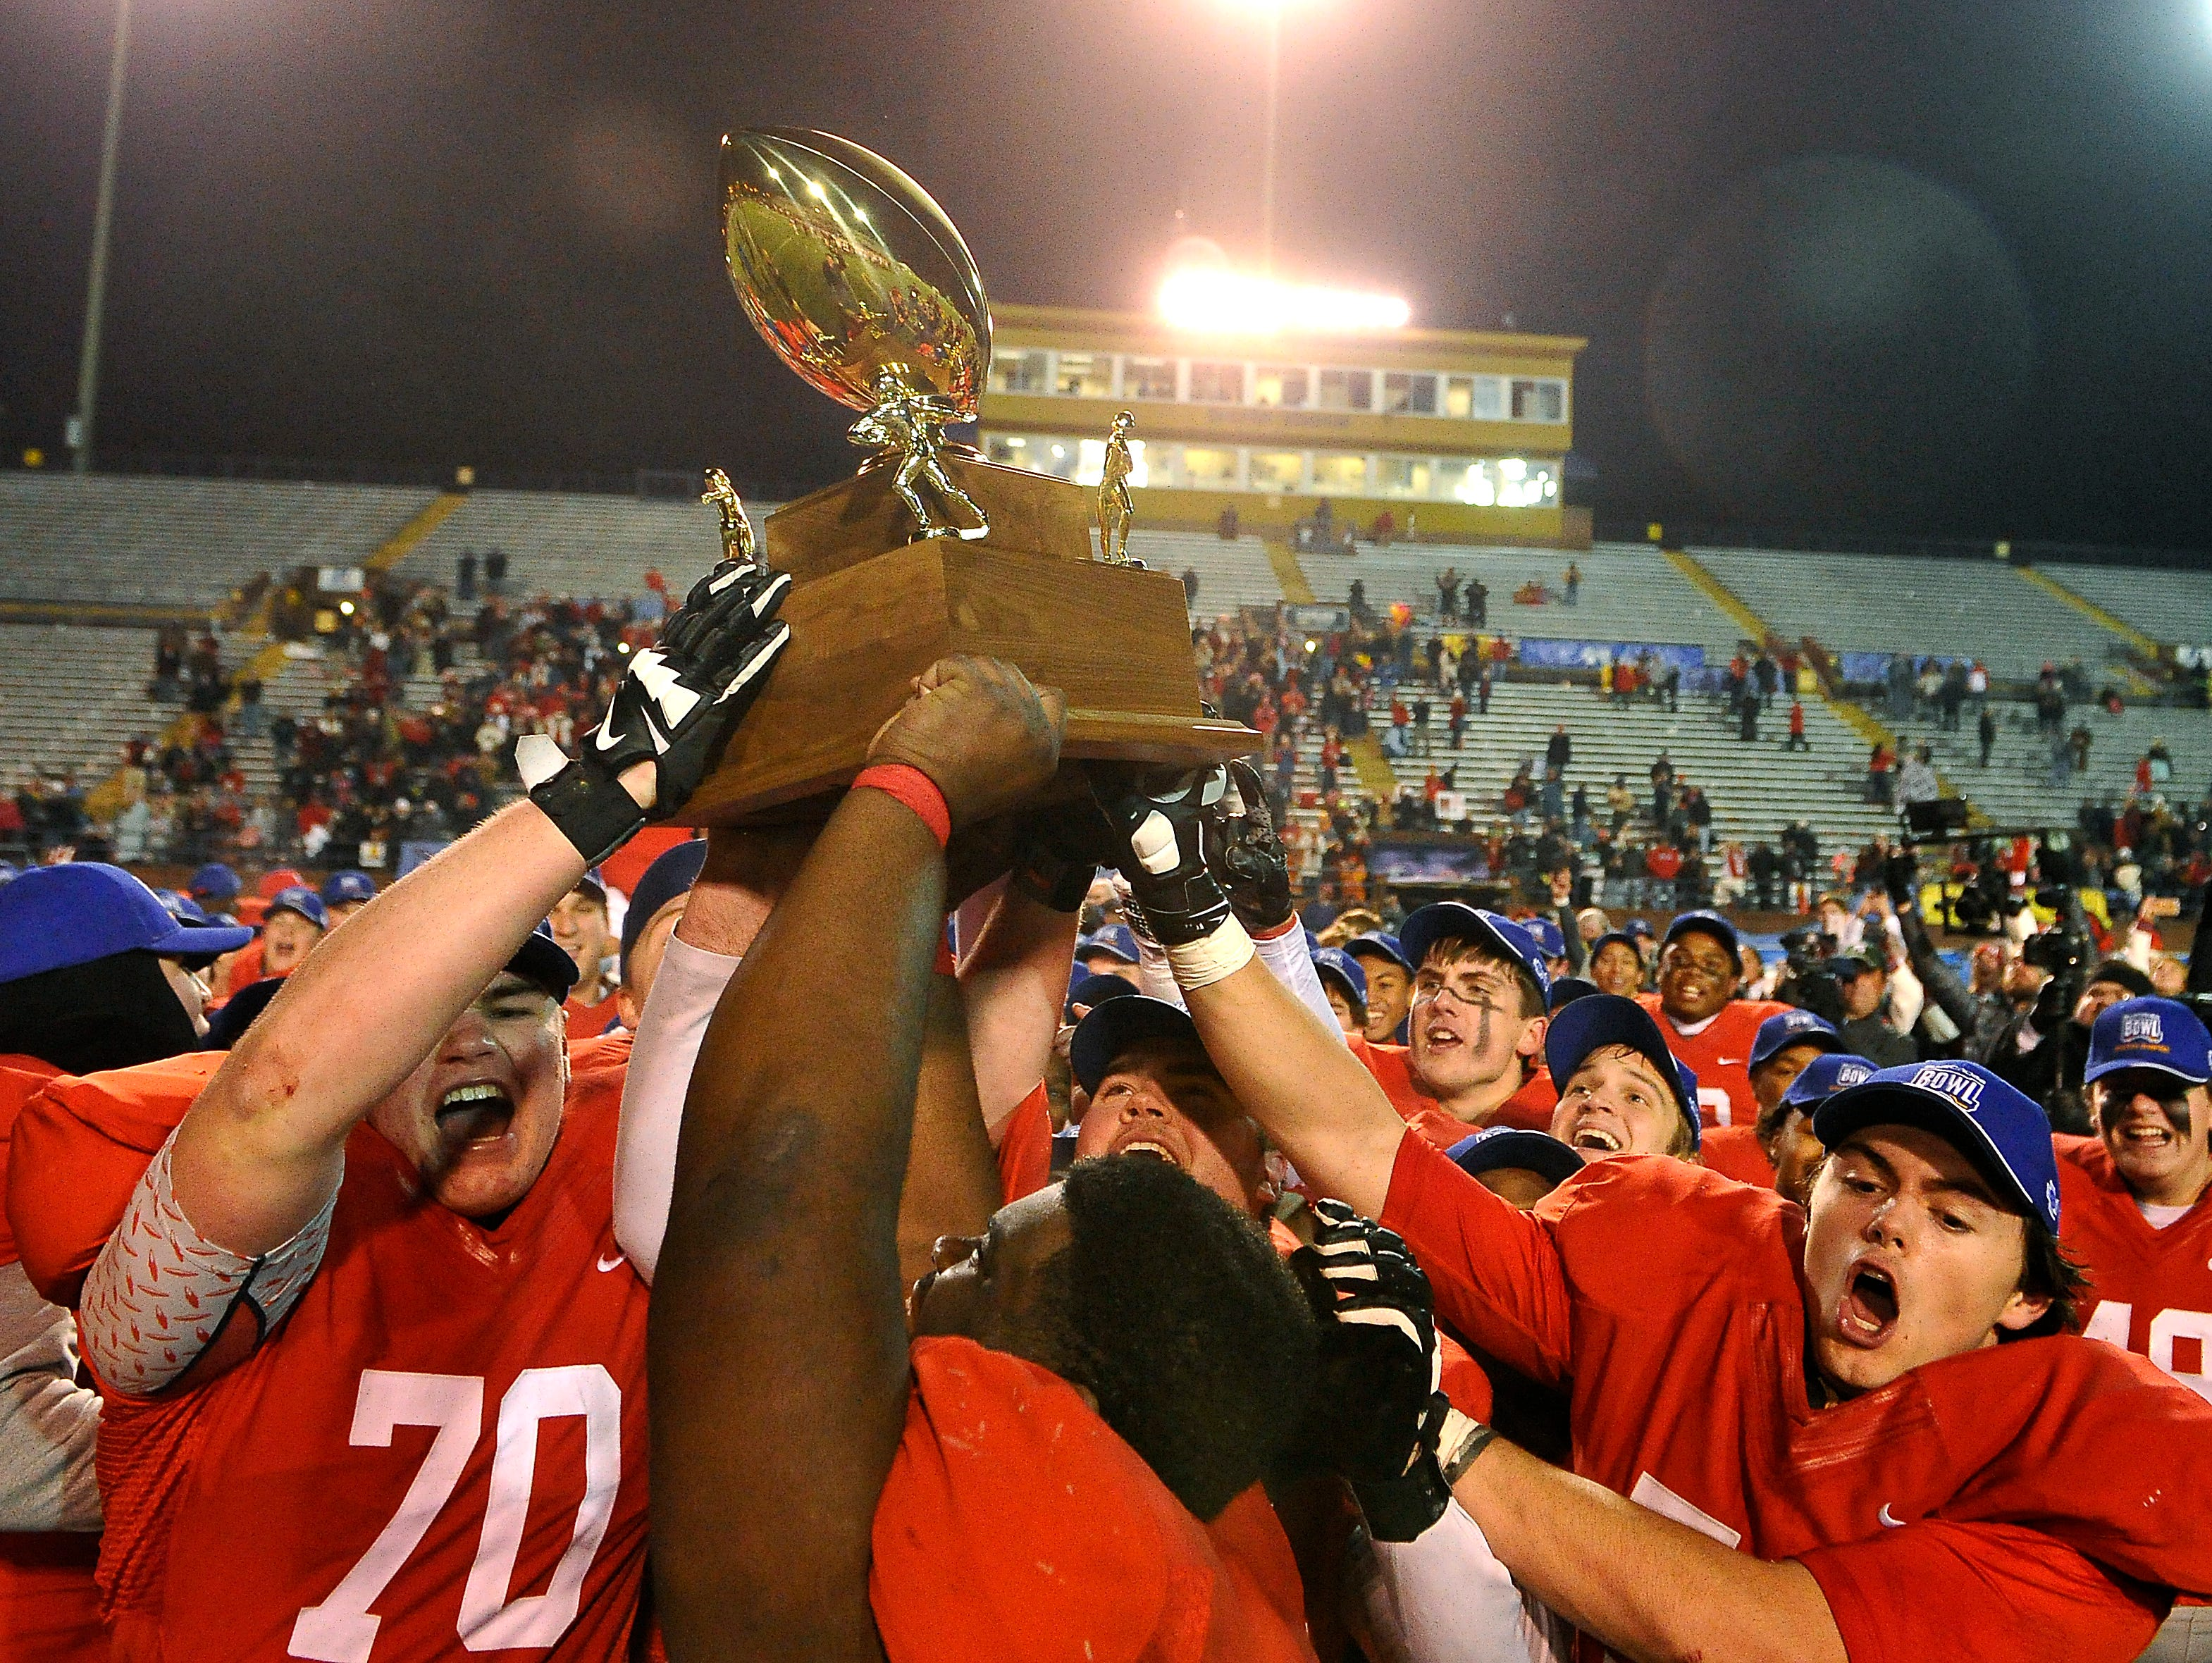 Brentwood Academy players celebrate their 56-55 double-overtime win over Montgomery Bell Academy in the BlueCross Bowl DII-AA state title game on Thursday, Dec. 3, 2015, in Cookeville.